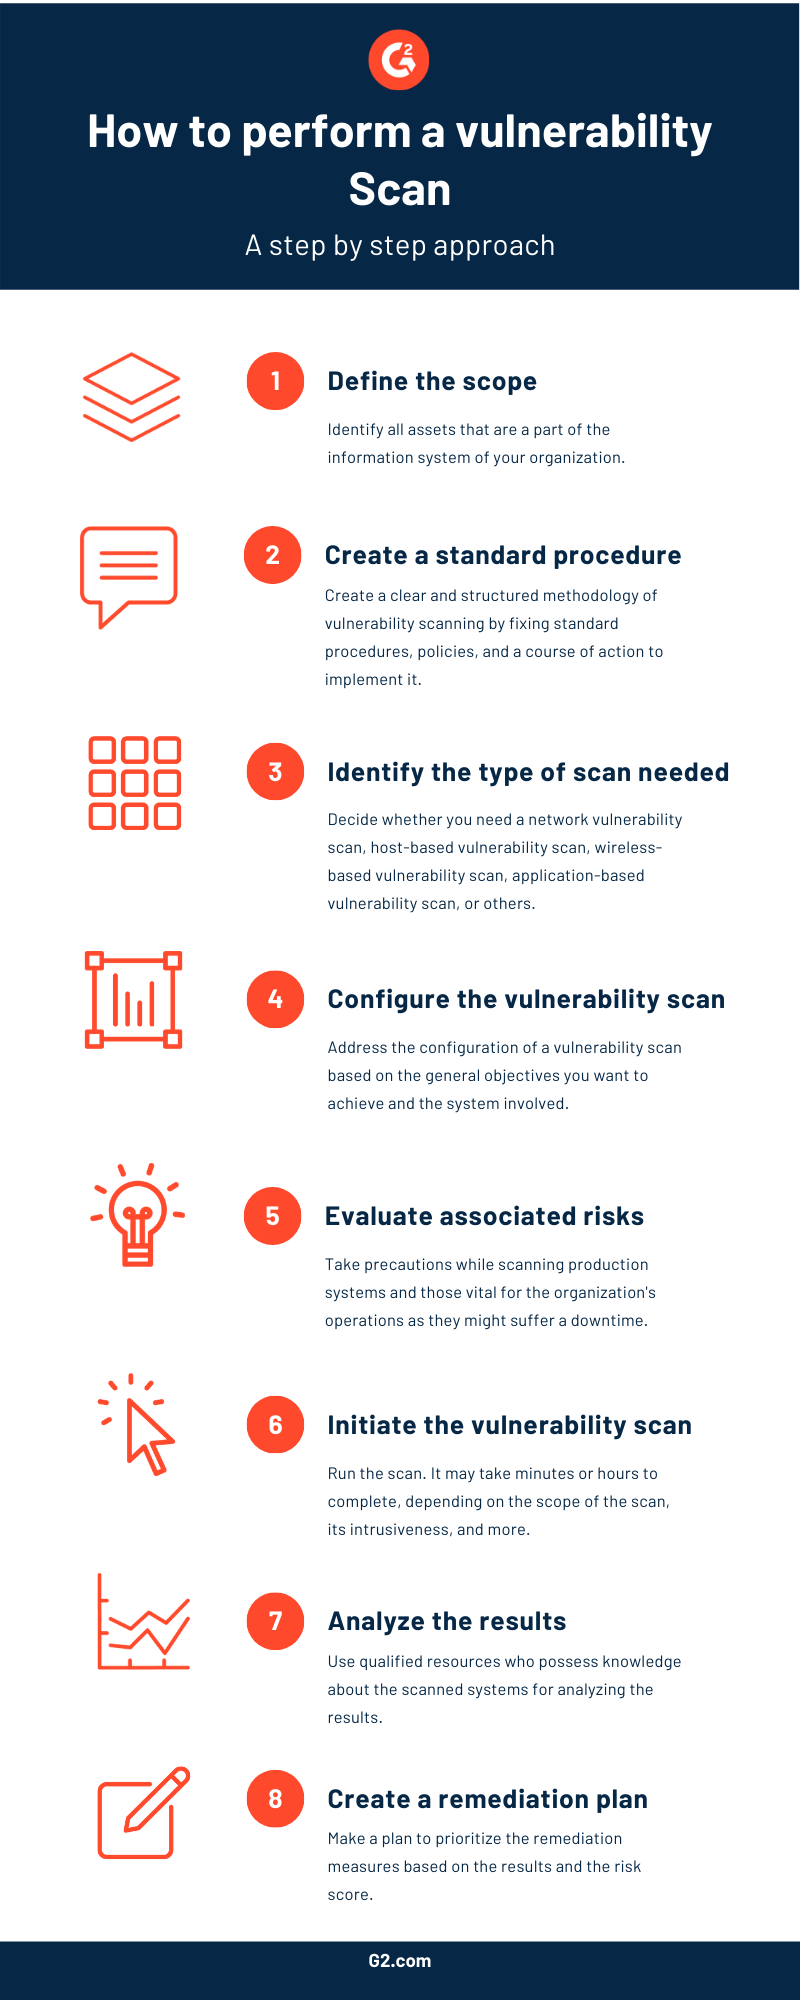 How to perform a vulnerability scan